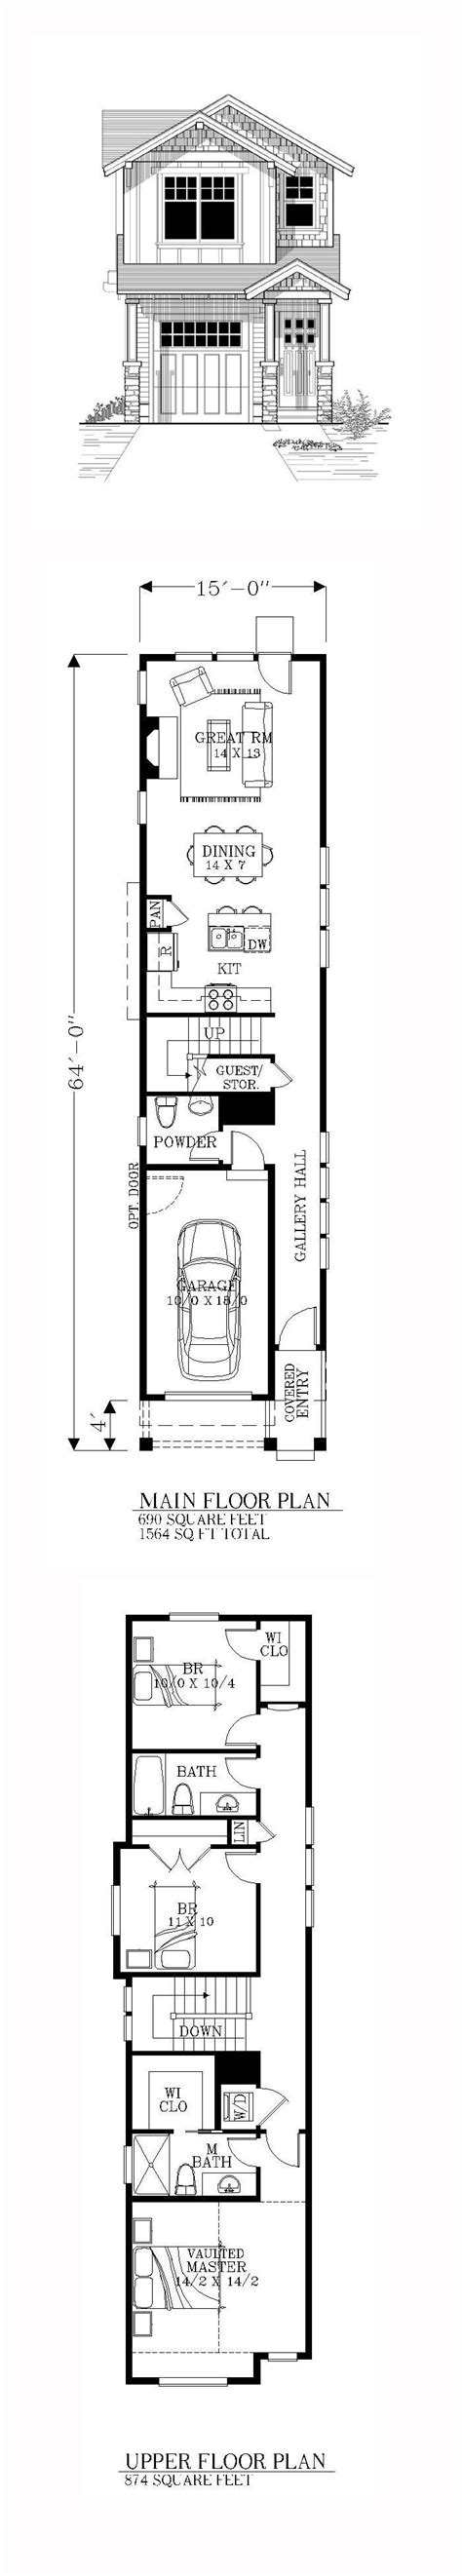 narrow house plans for narrow lots 25 best ideas about narrow lot house plans on narrow house plans retirement house